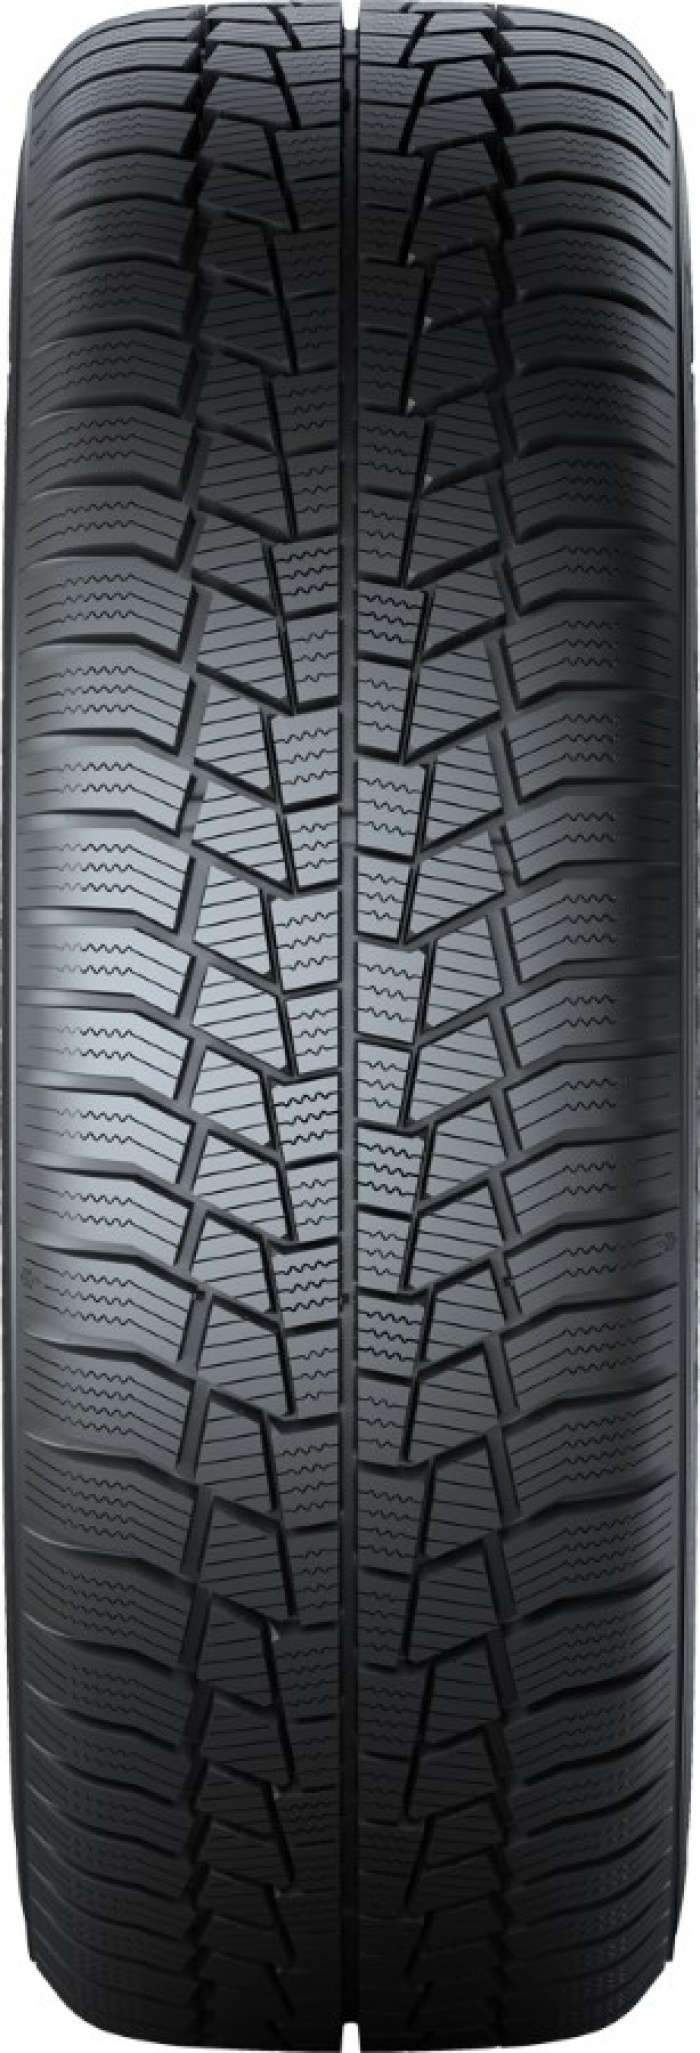 Gislaved Euro Frost 6 195/65 R15 95T  не шип